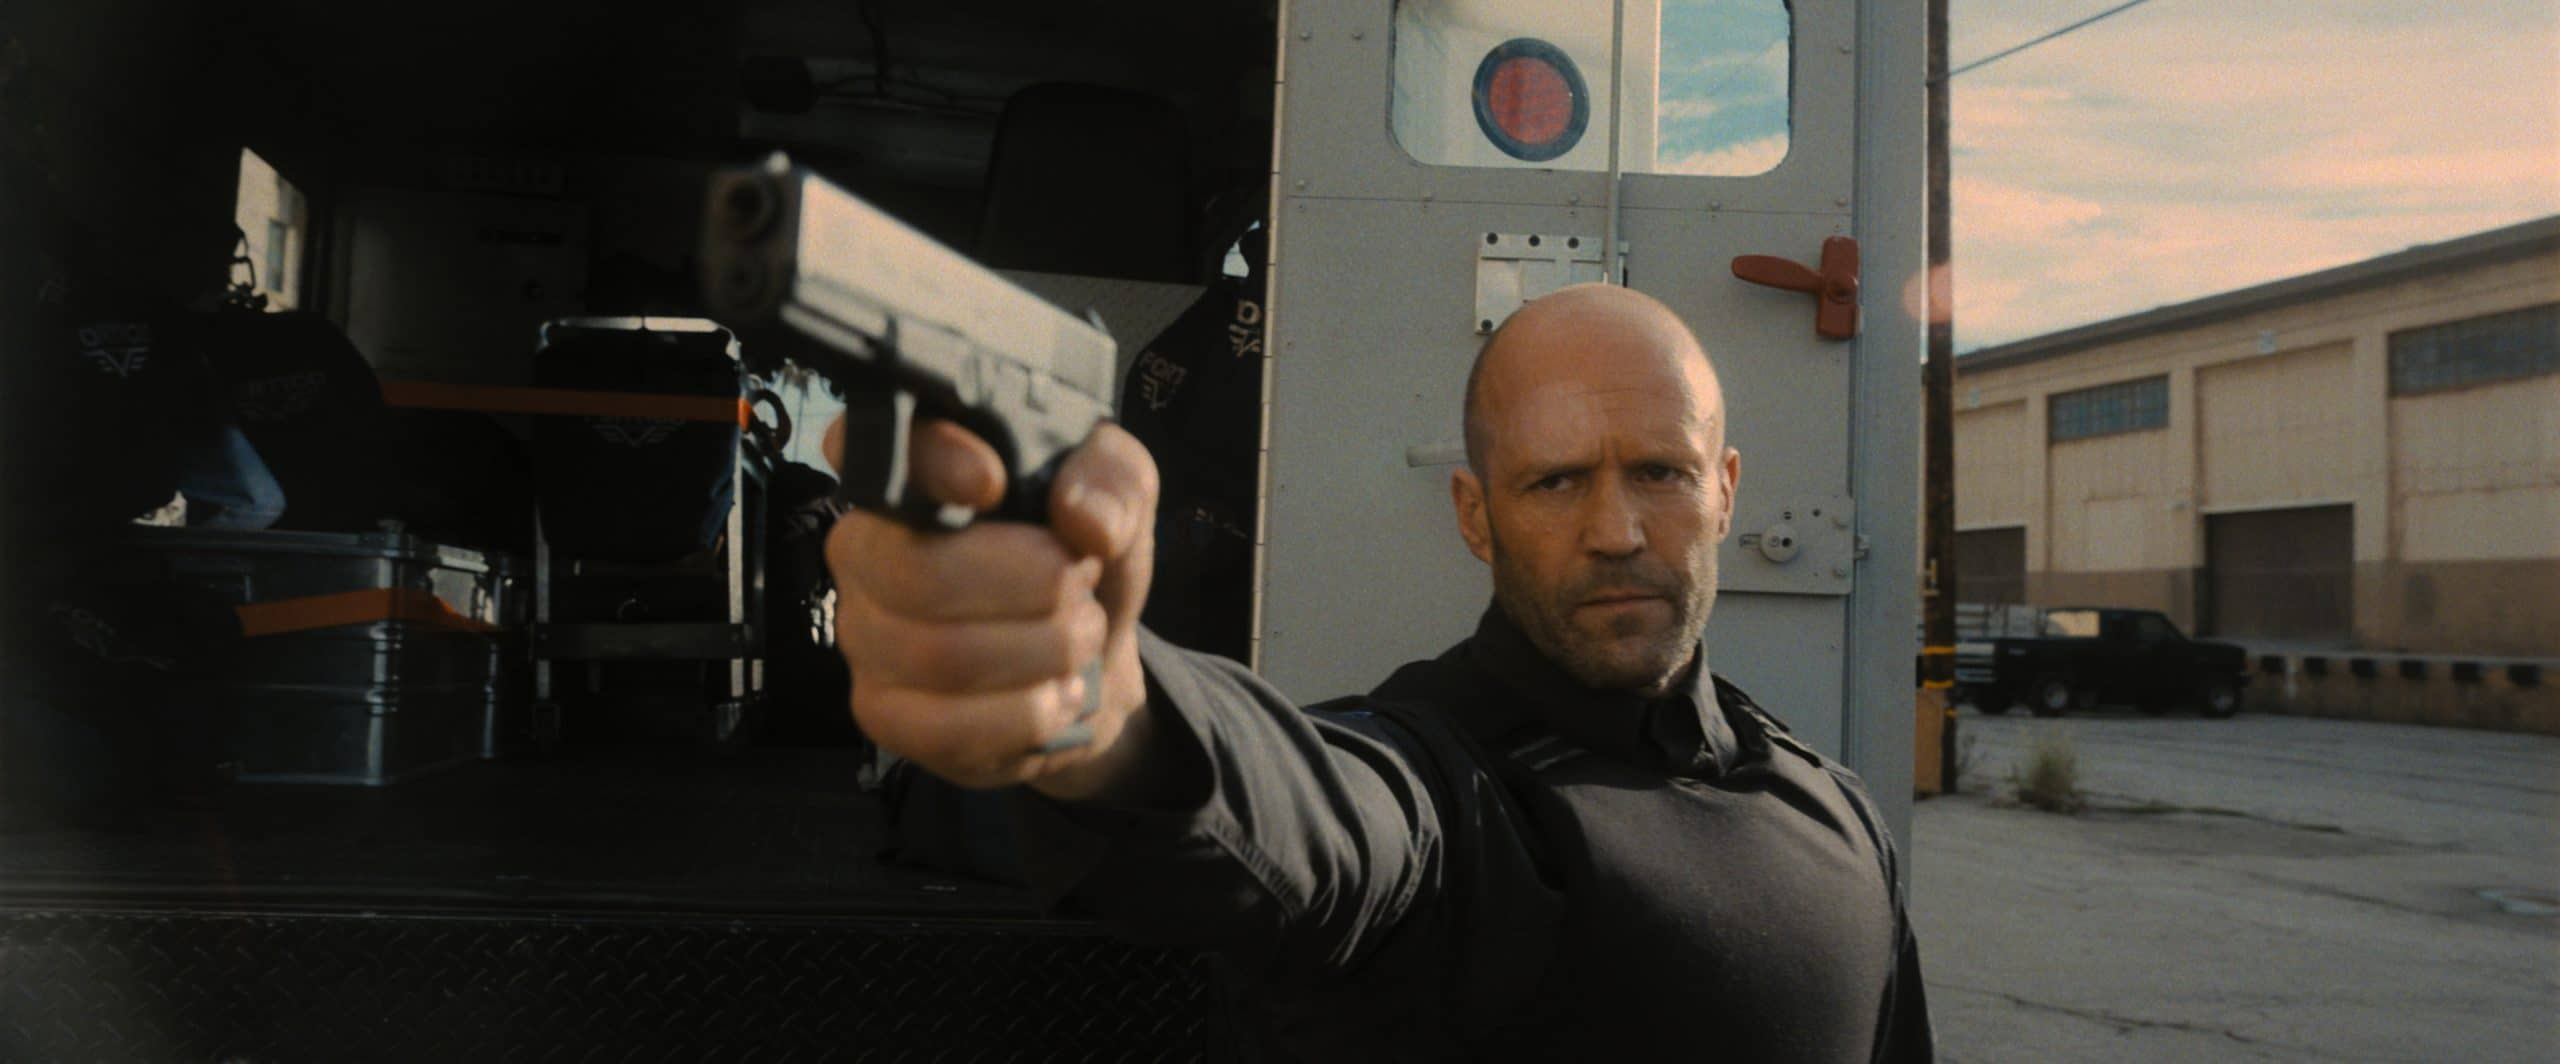 Jason Statham Kicks All Kinds Of Ass In 'Wrath Of Man'